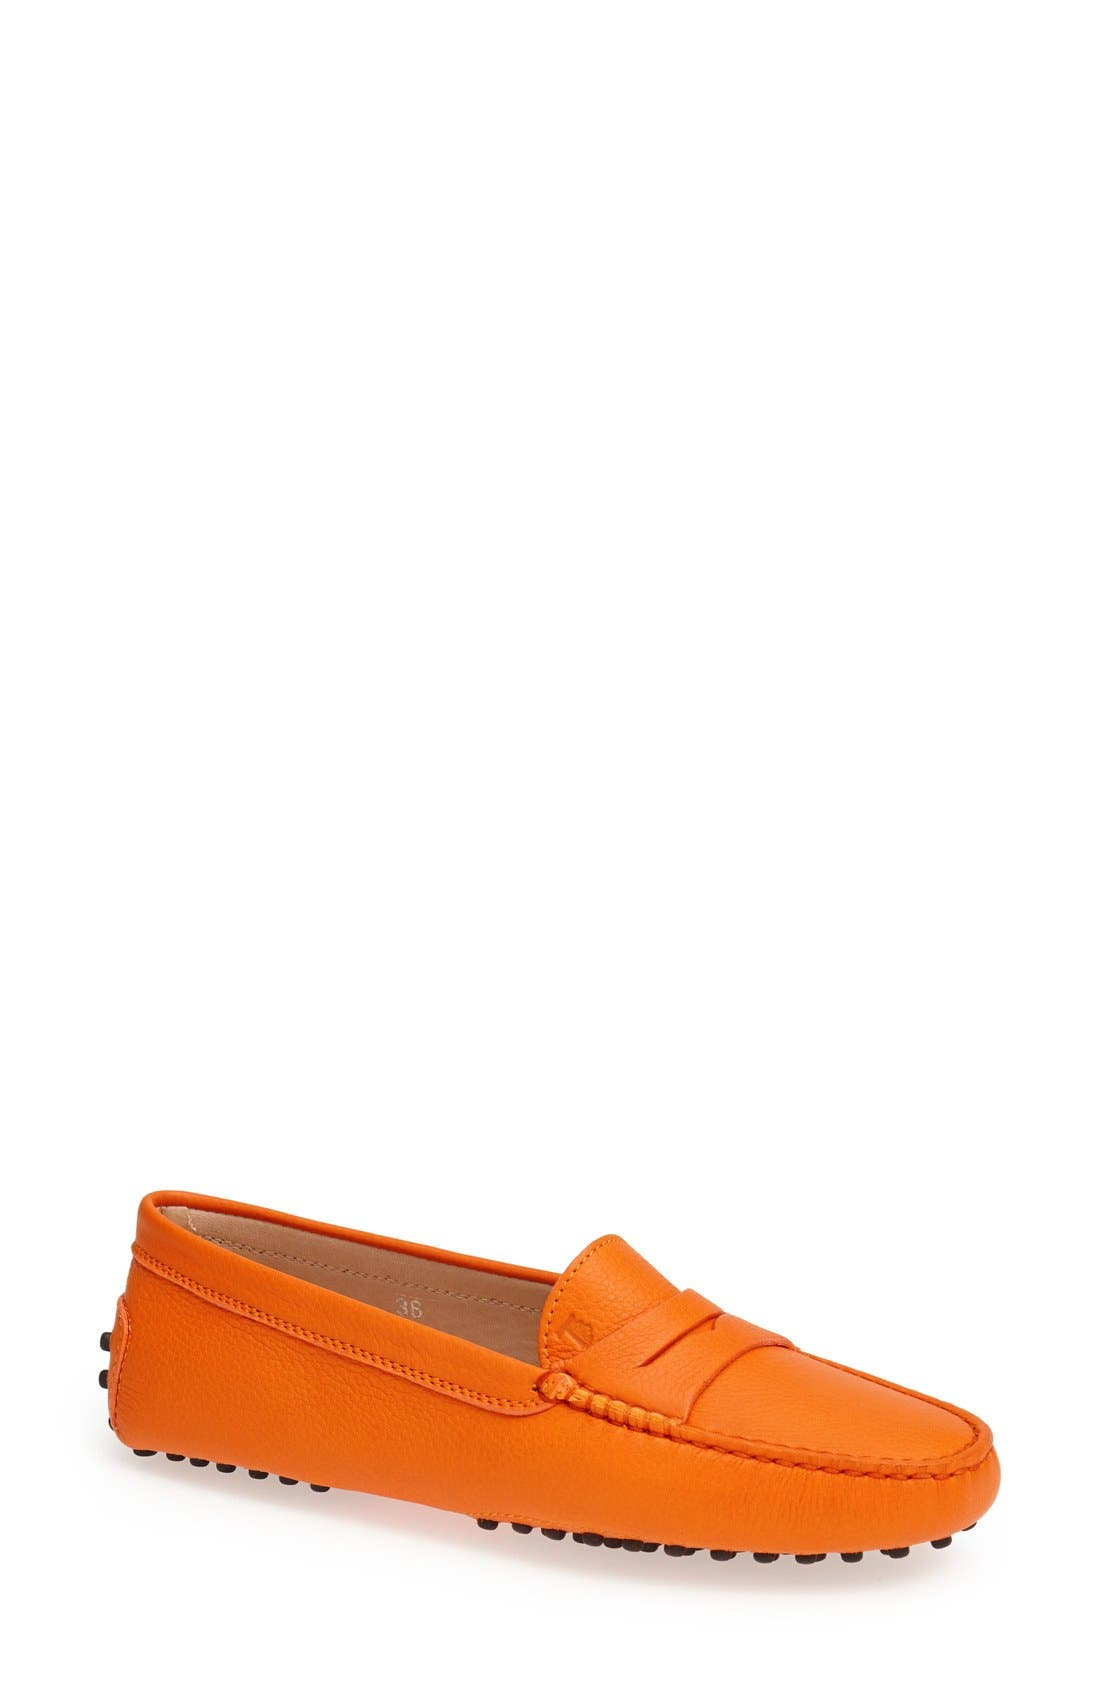 TODS Gommini Driving Moccasin